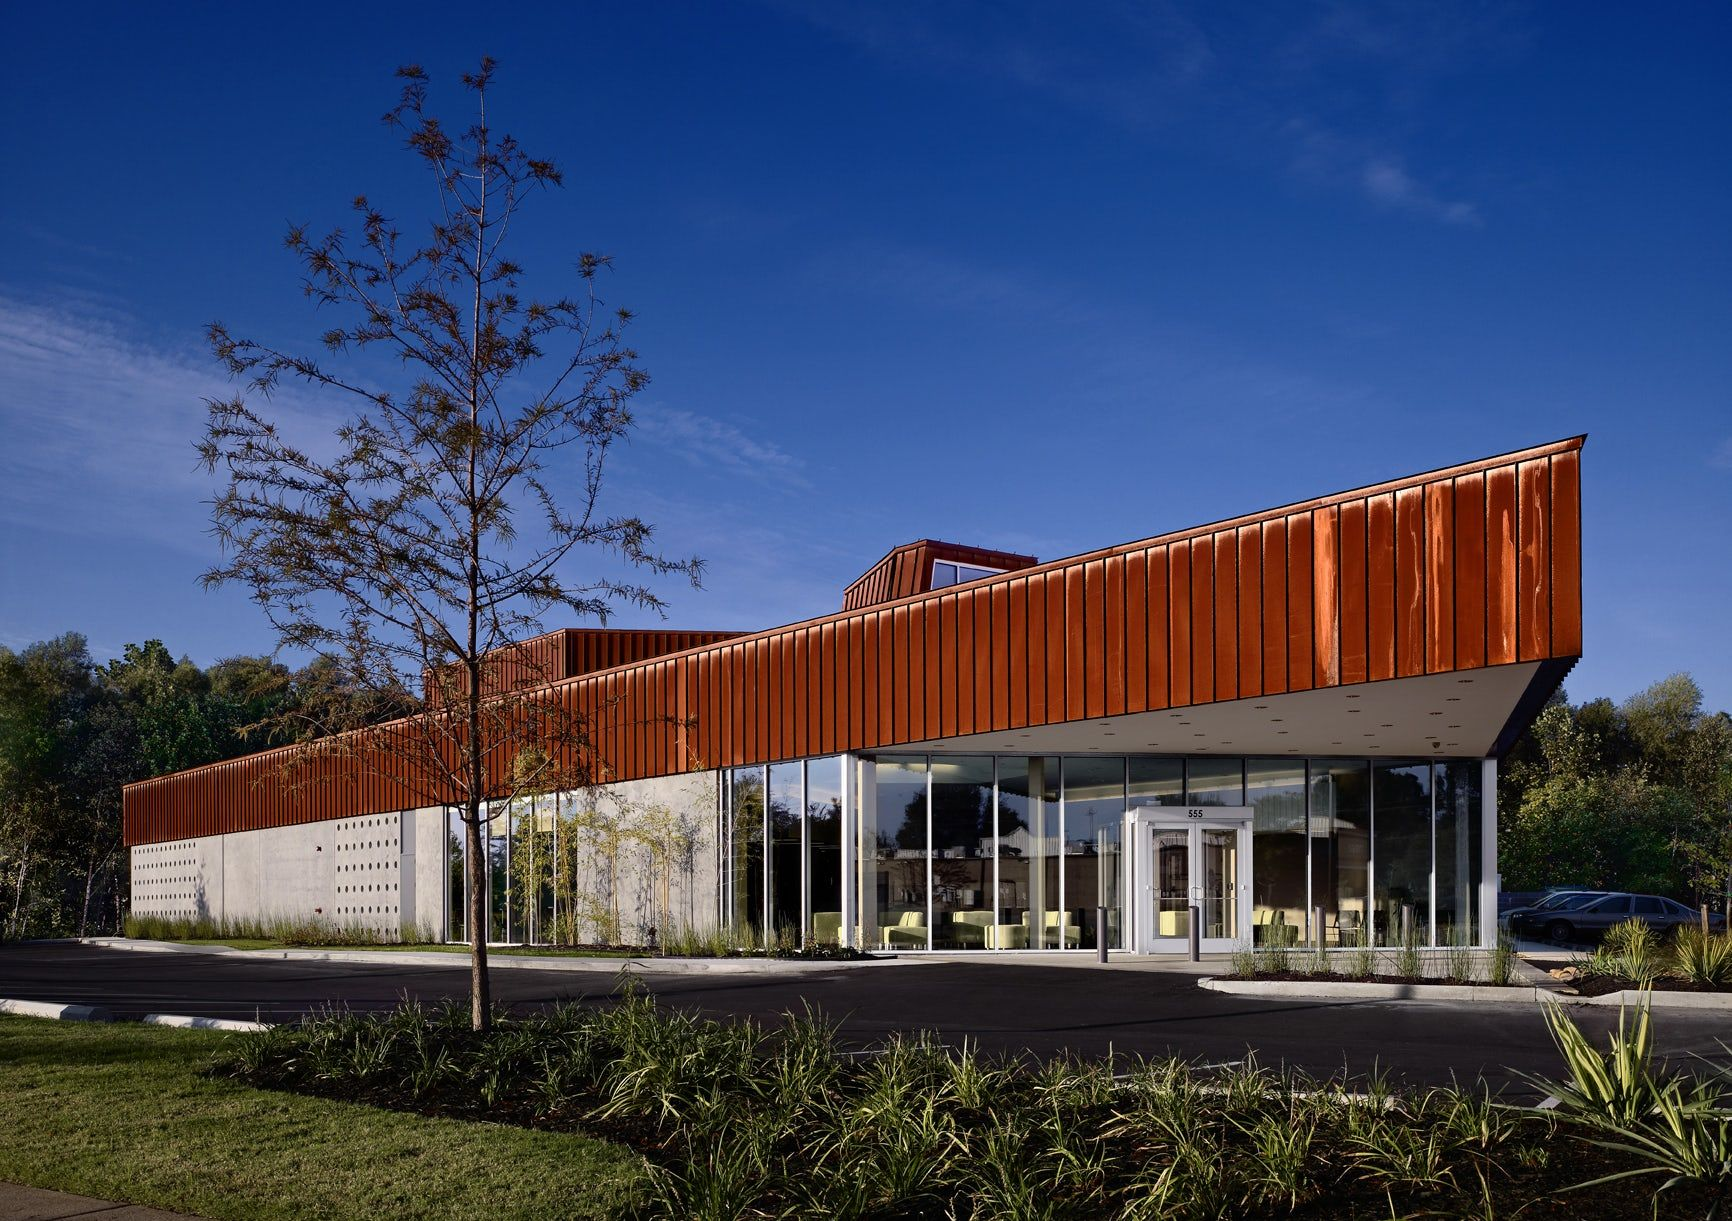 Memphis Veterinary Specialists Healthcare architecture